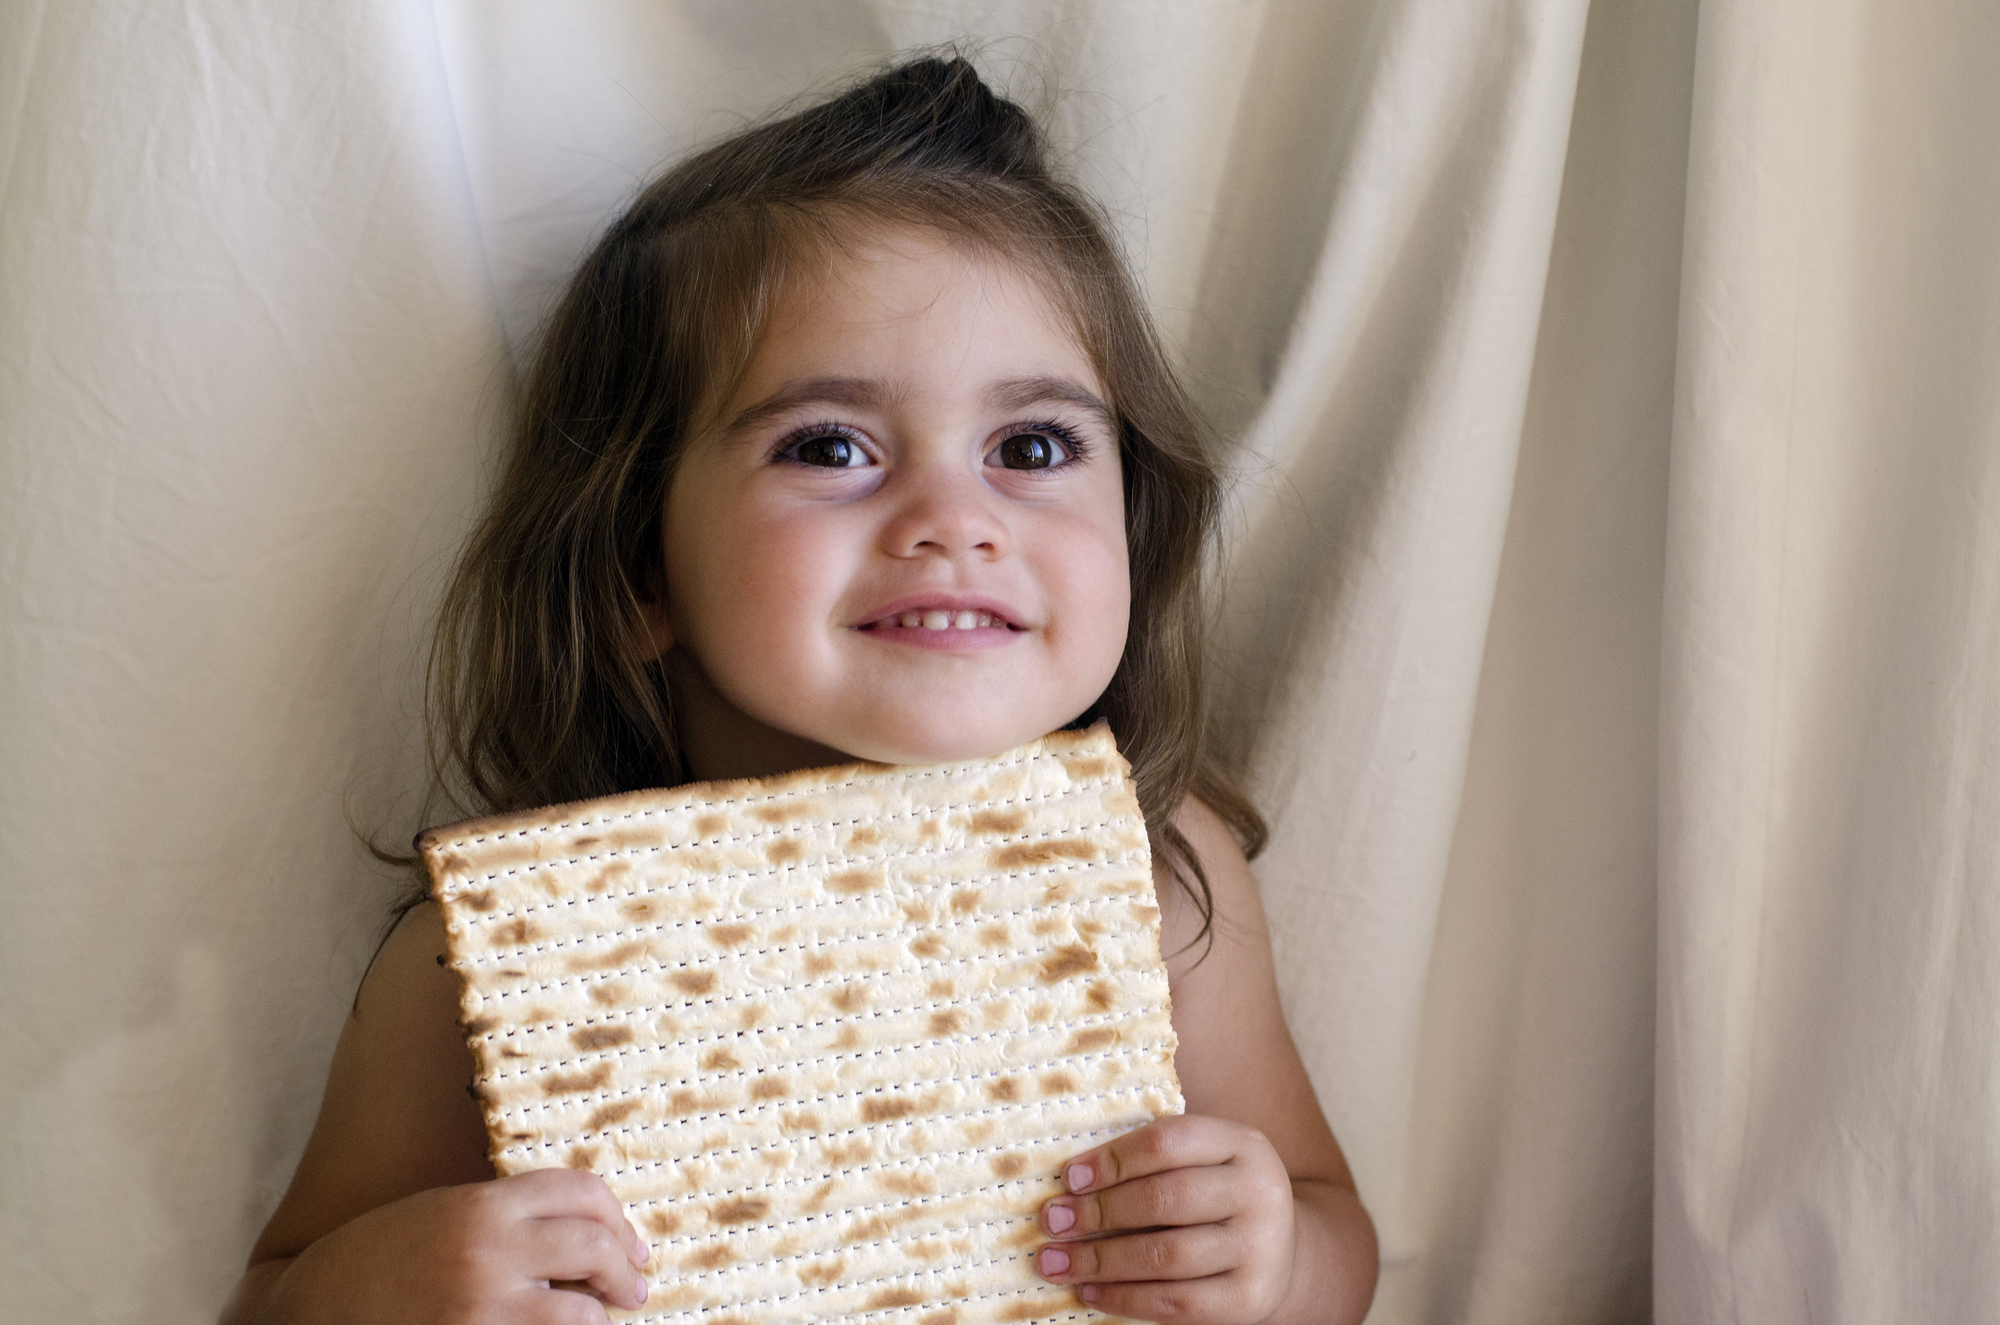 Young girl holding piece of matzos